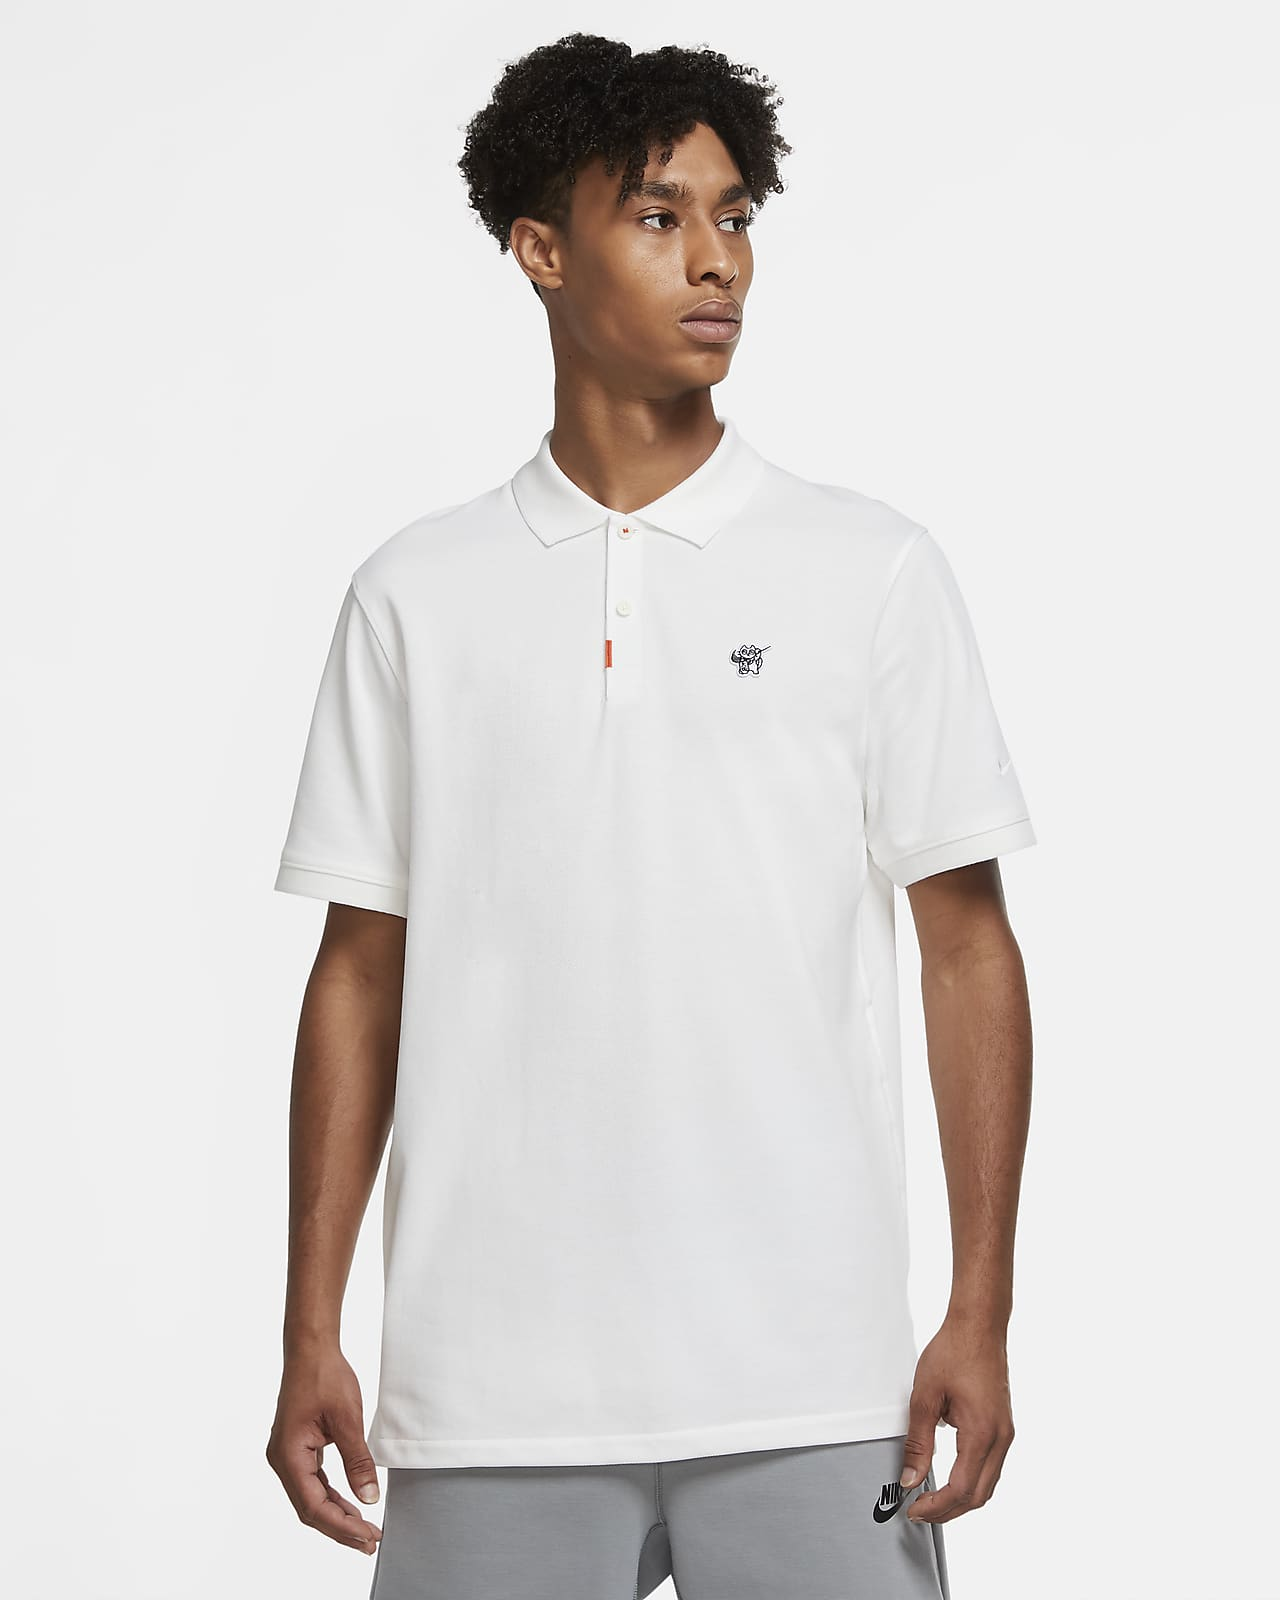 The Nike Polo Naomi Osaka Poloshirt in schmaler Passform (Unisex)